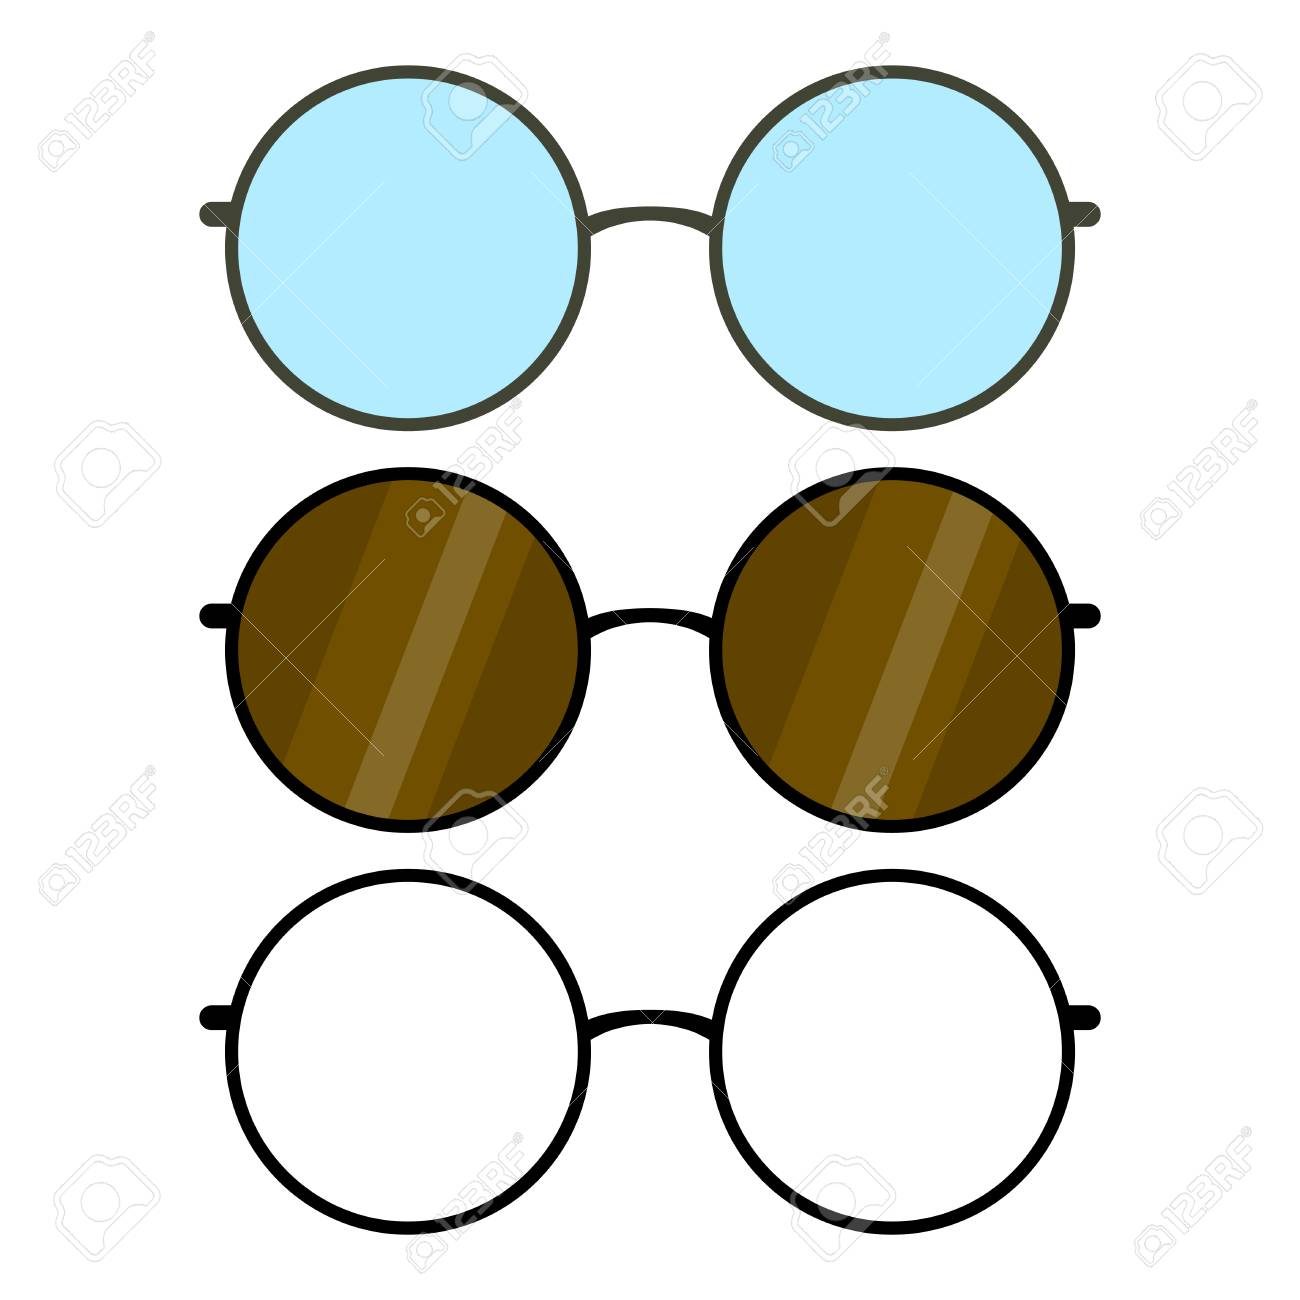 cb729cff368 Set of round glasses frames Stock Vector - 99834442